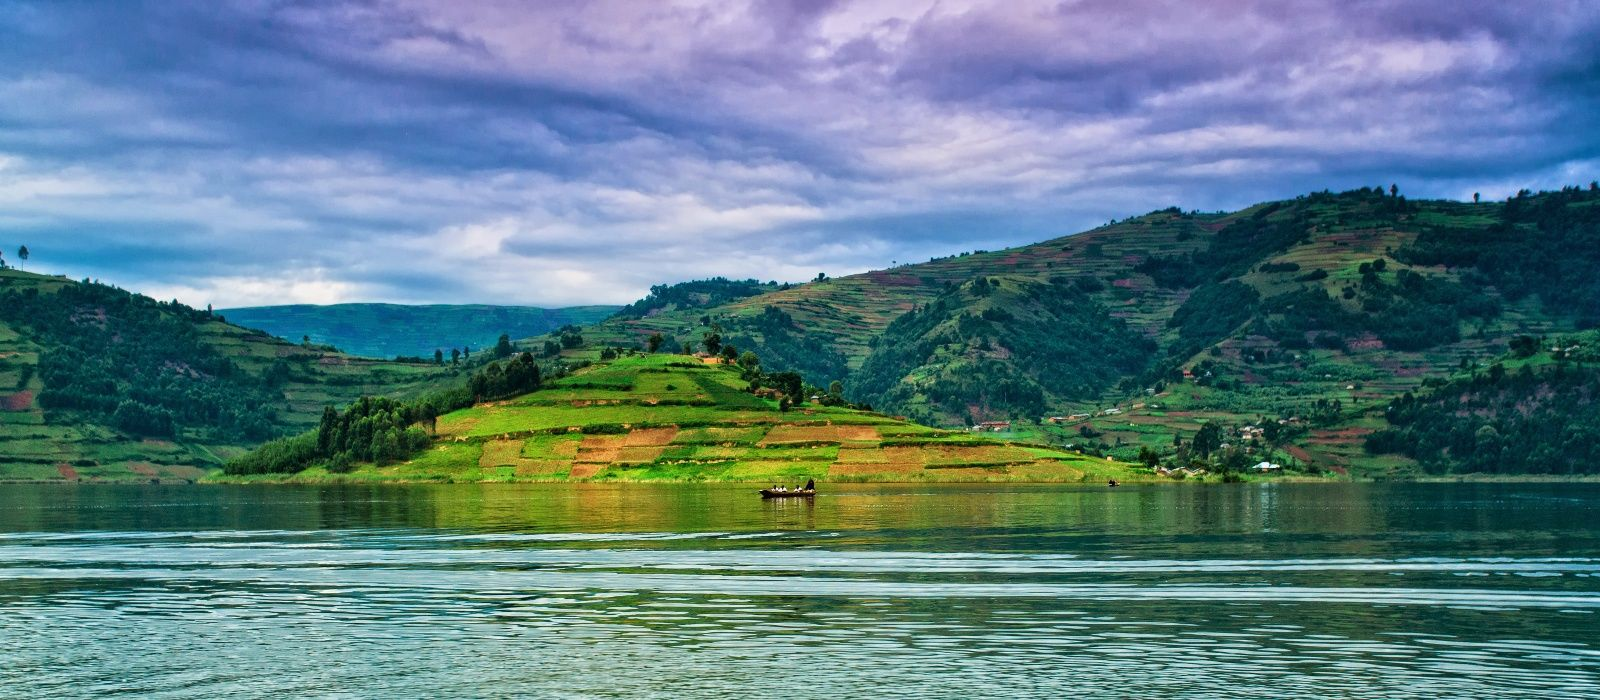 Destination Lake Bunyonyi Uganda